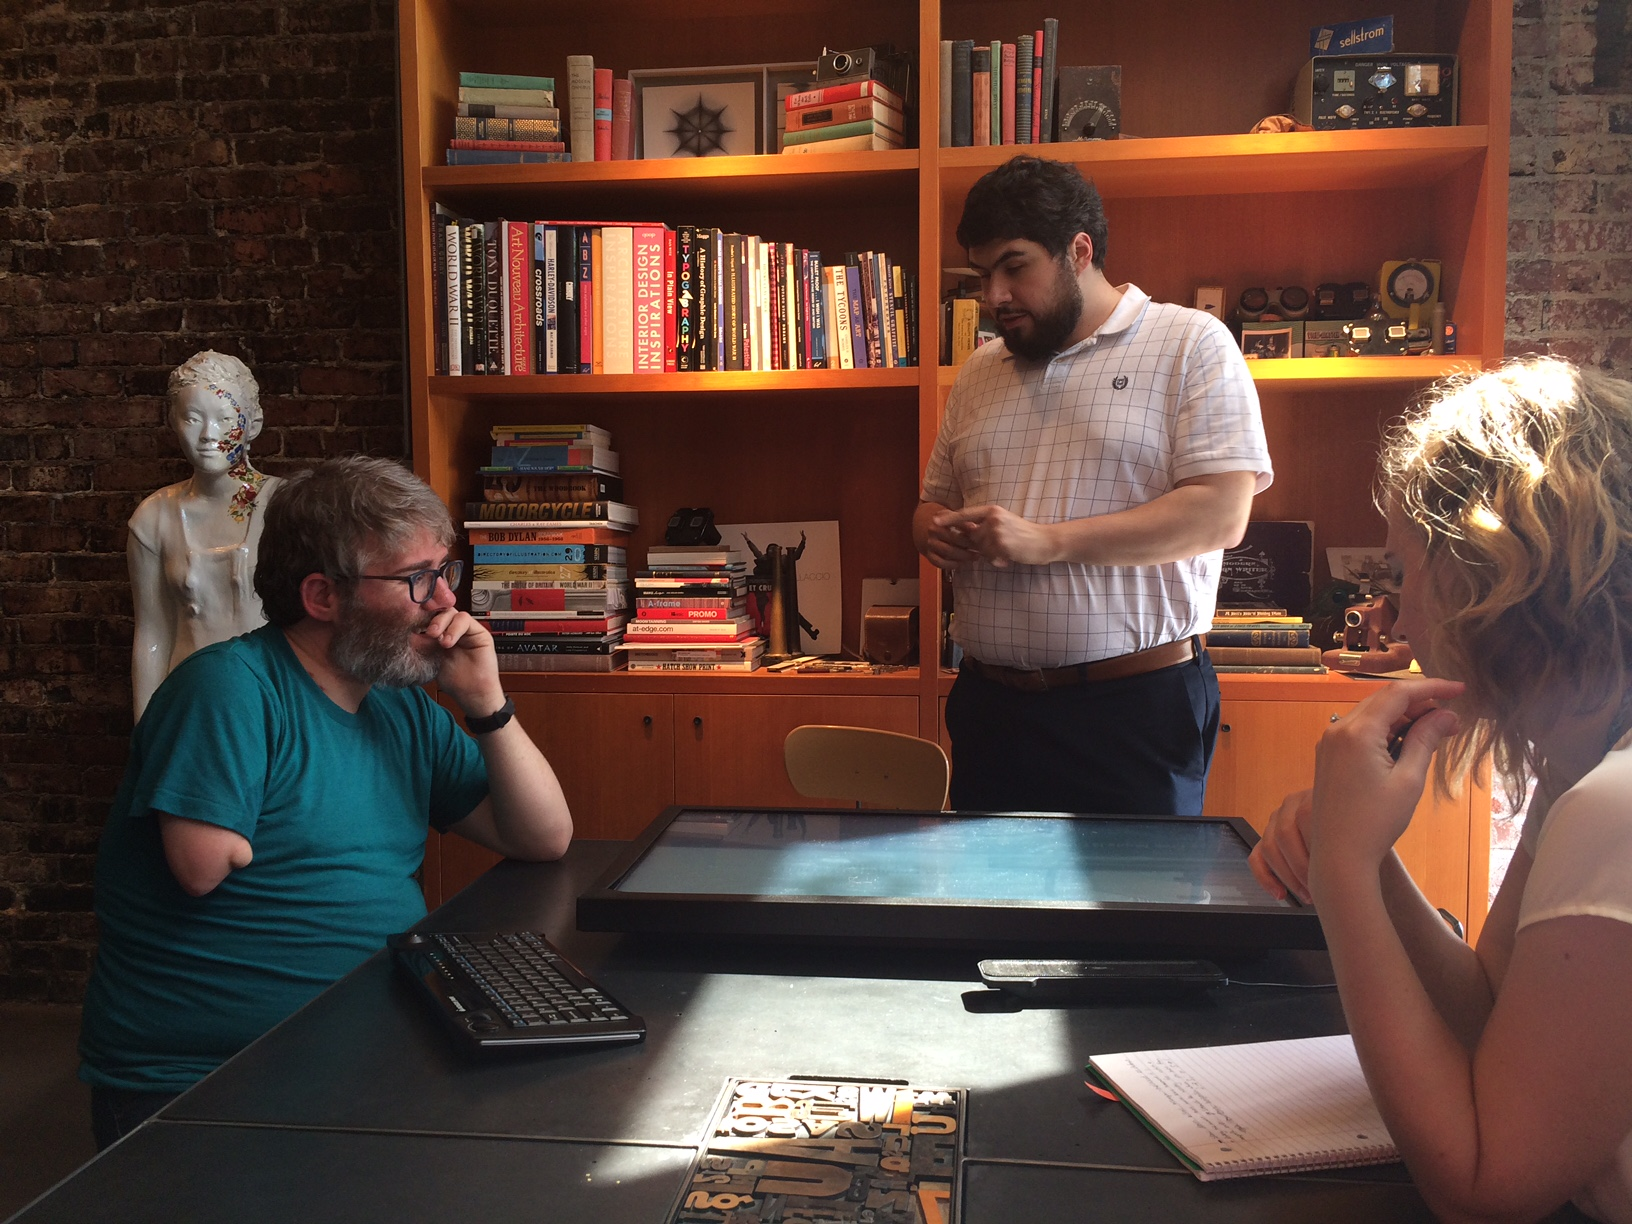 A photo inside the Belle & Wissell, Co. studio shows three individuals talking around a touch-screen laid on a conference table. From left to right are Shaun Kane, Sina Bahram, and Sarah Trueblood.